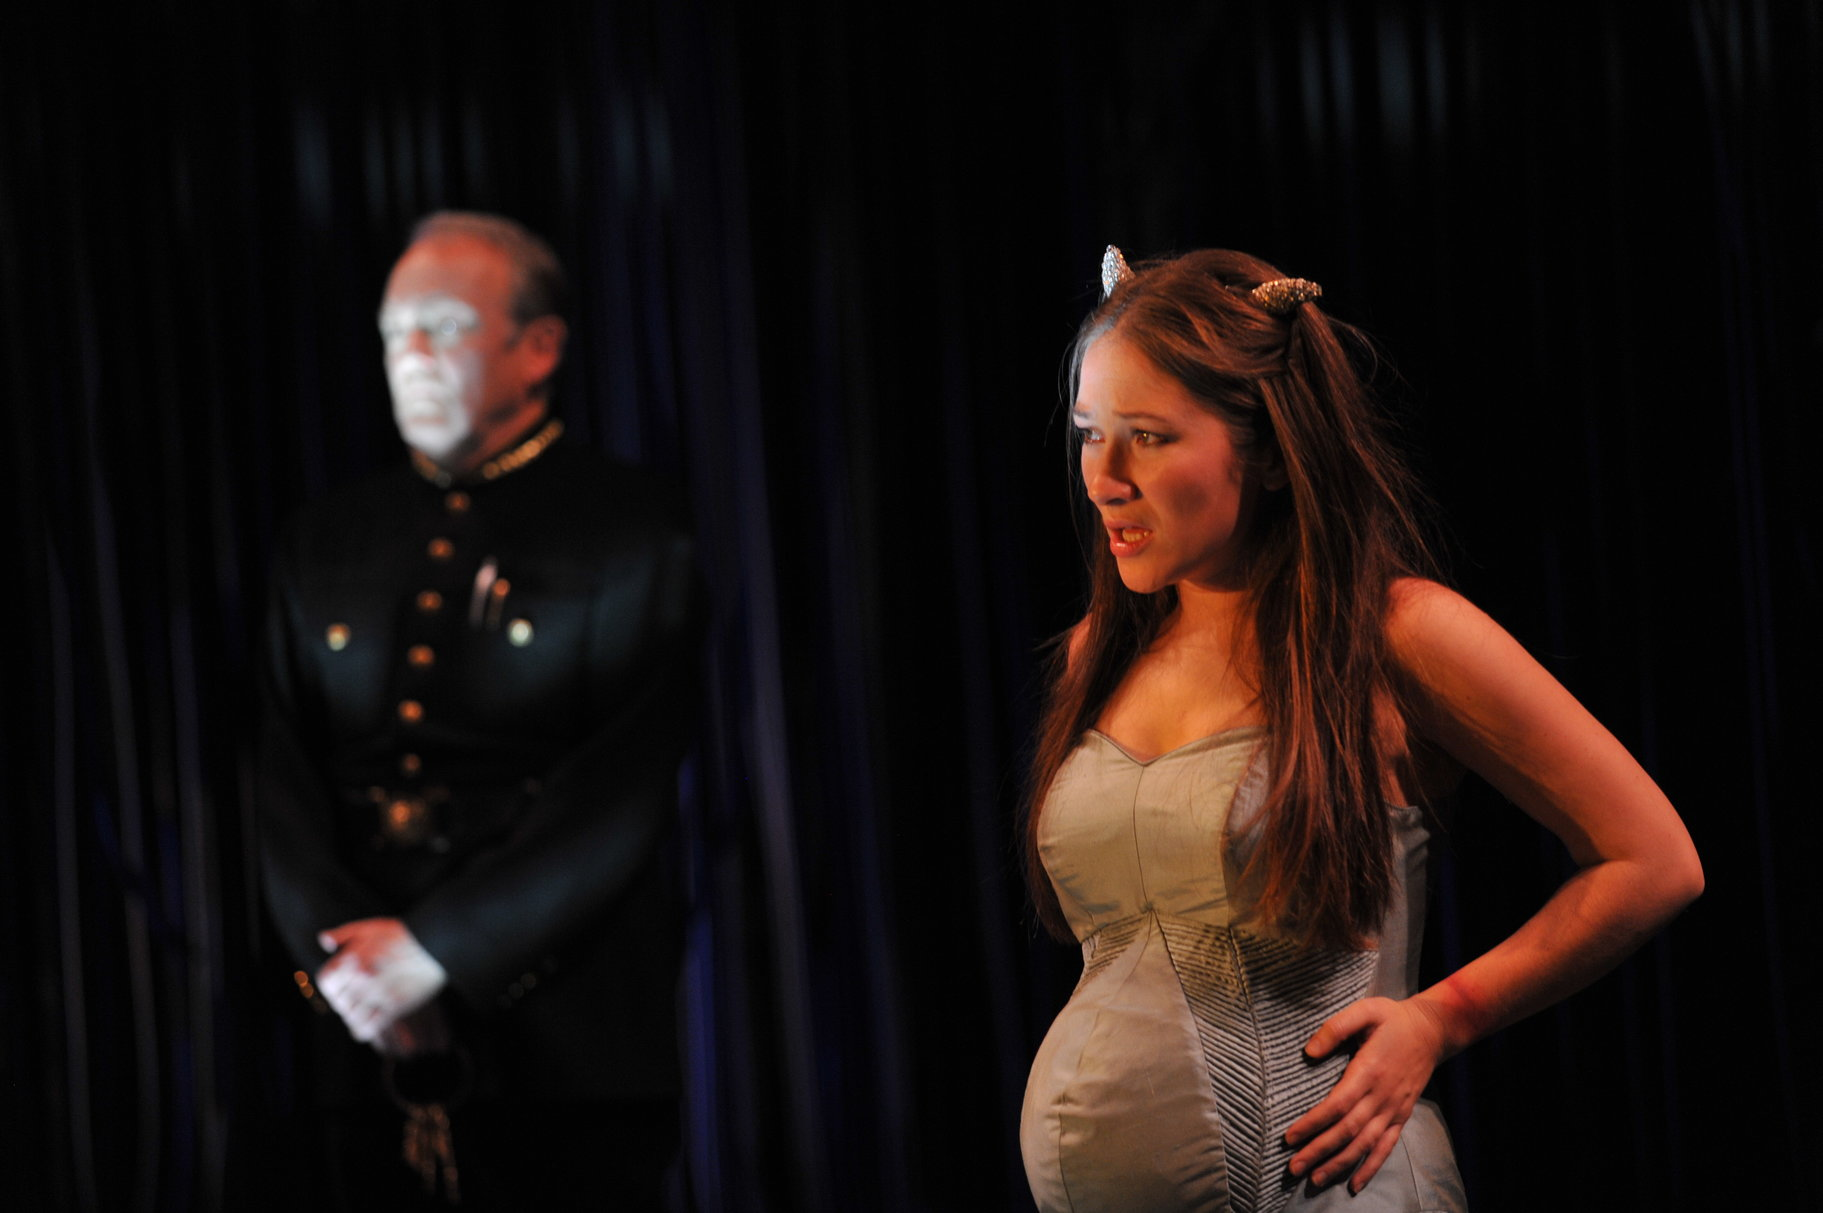 A heavily pregnant woman in a tight dress.